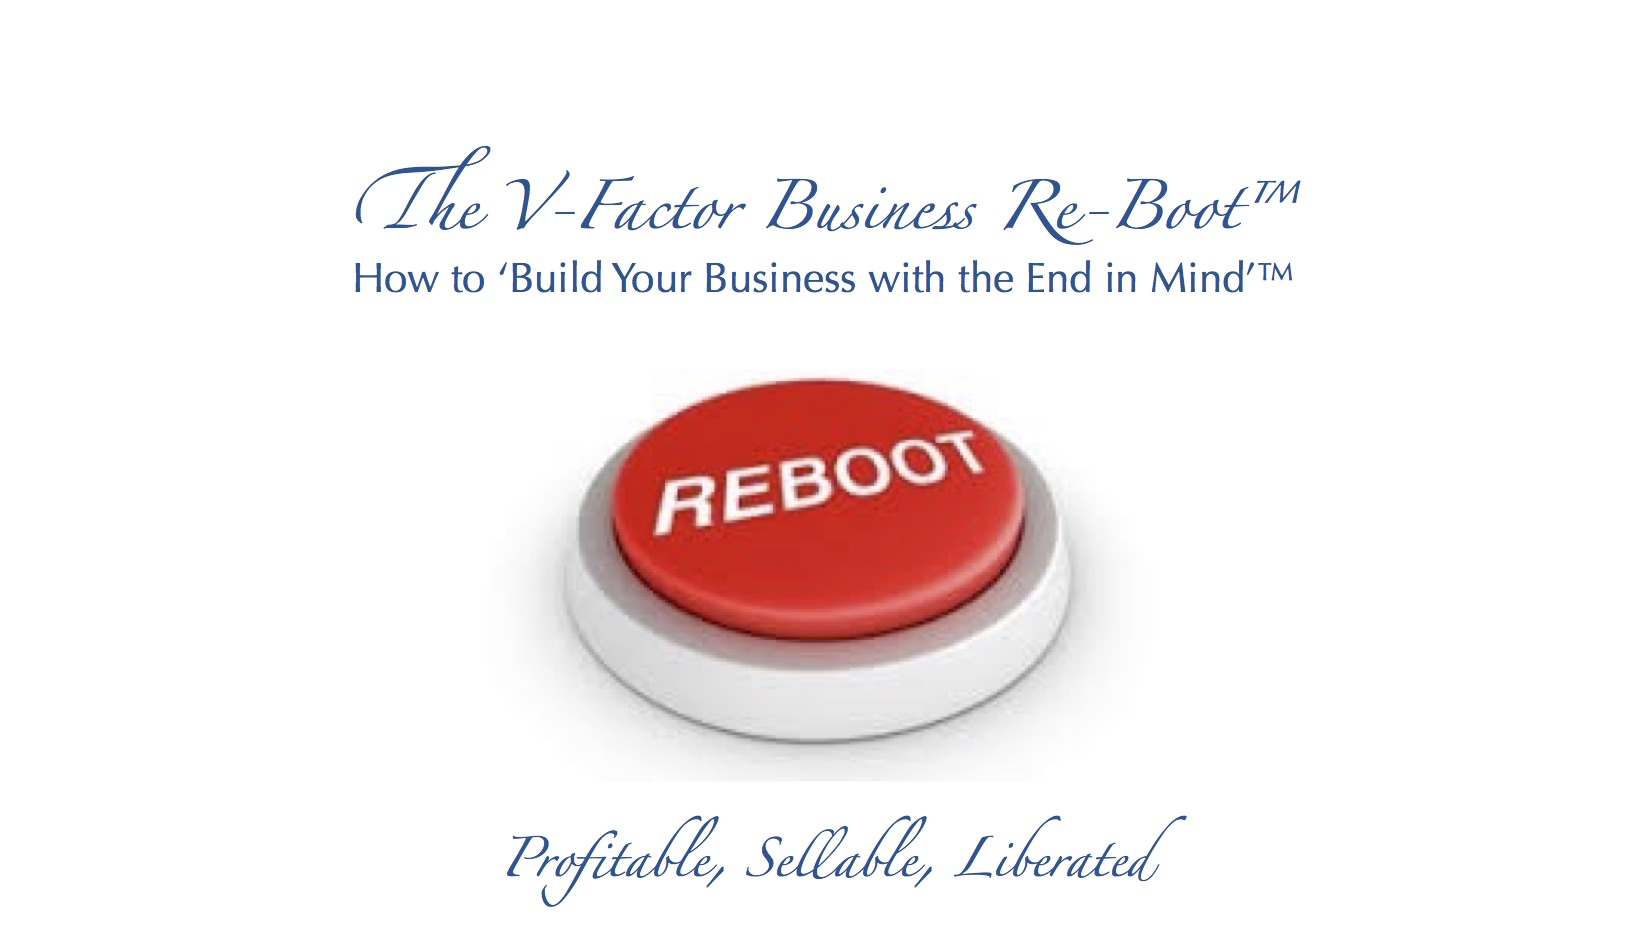 V-Factor Business Reboot